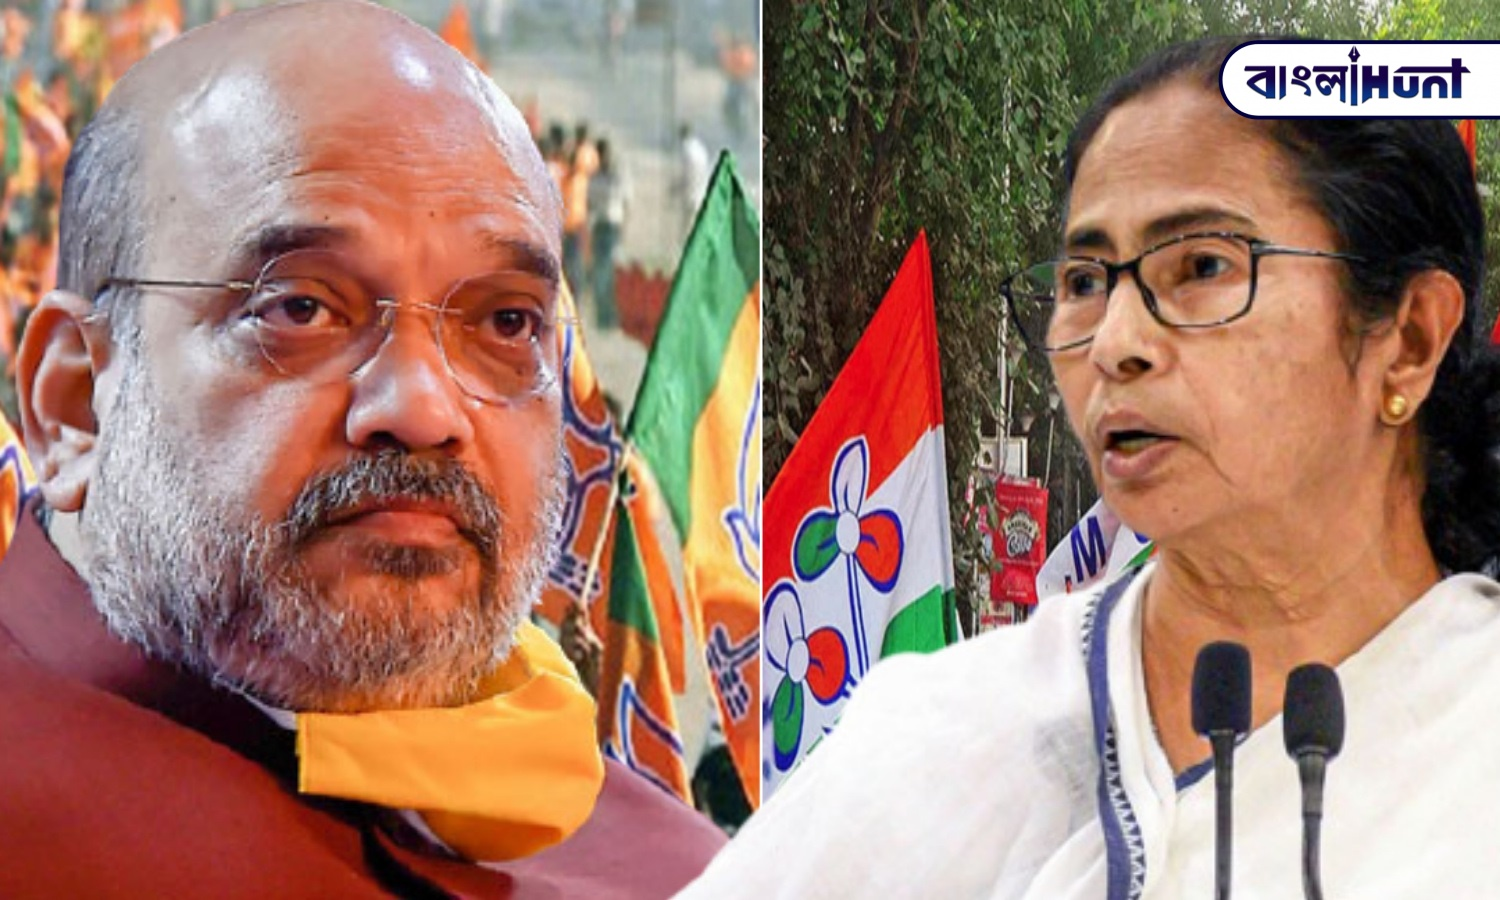 The tmc, ready to retaliate against Amit Shah's visit to Bengal, called a huge public meeting